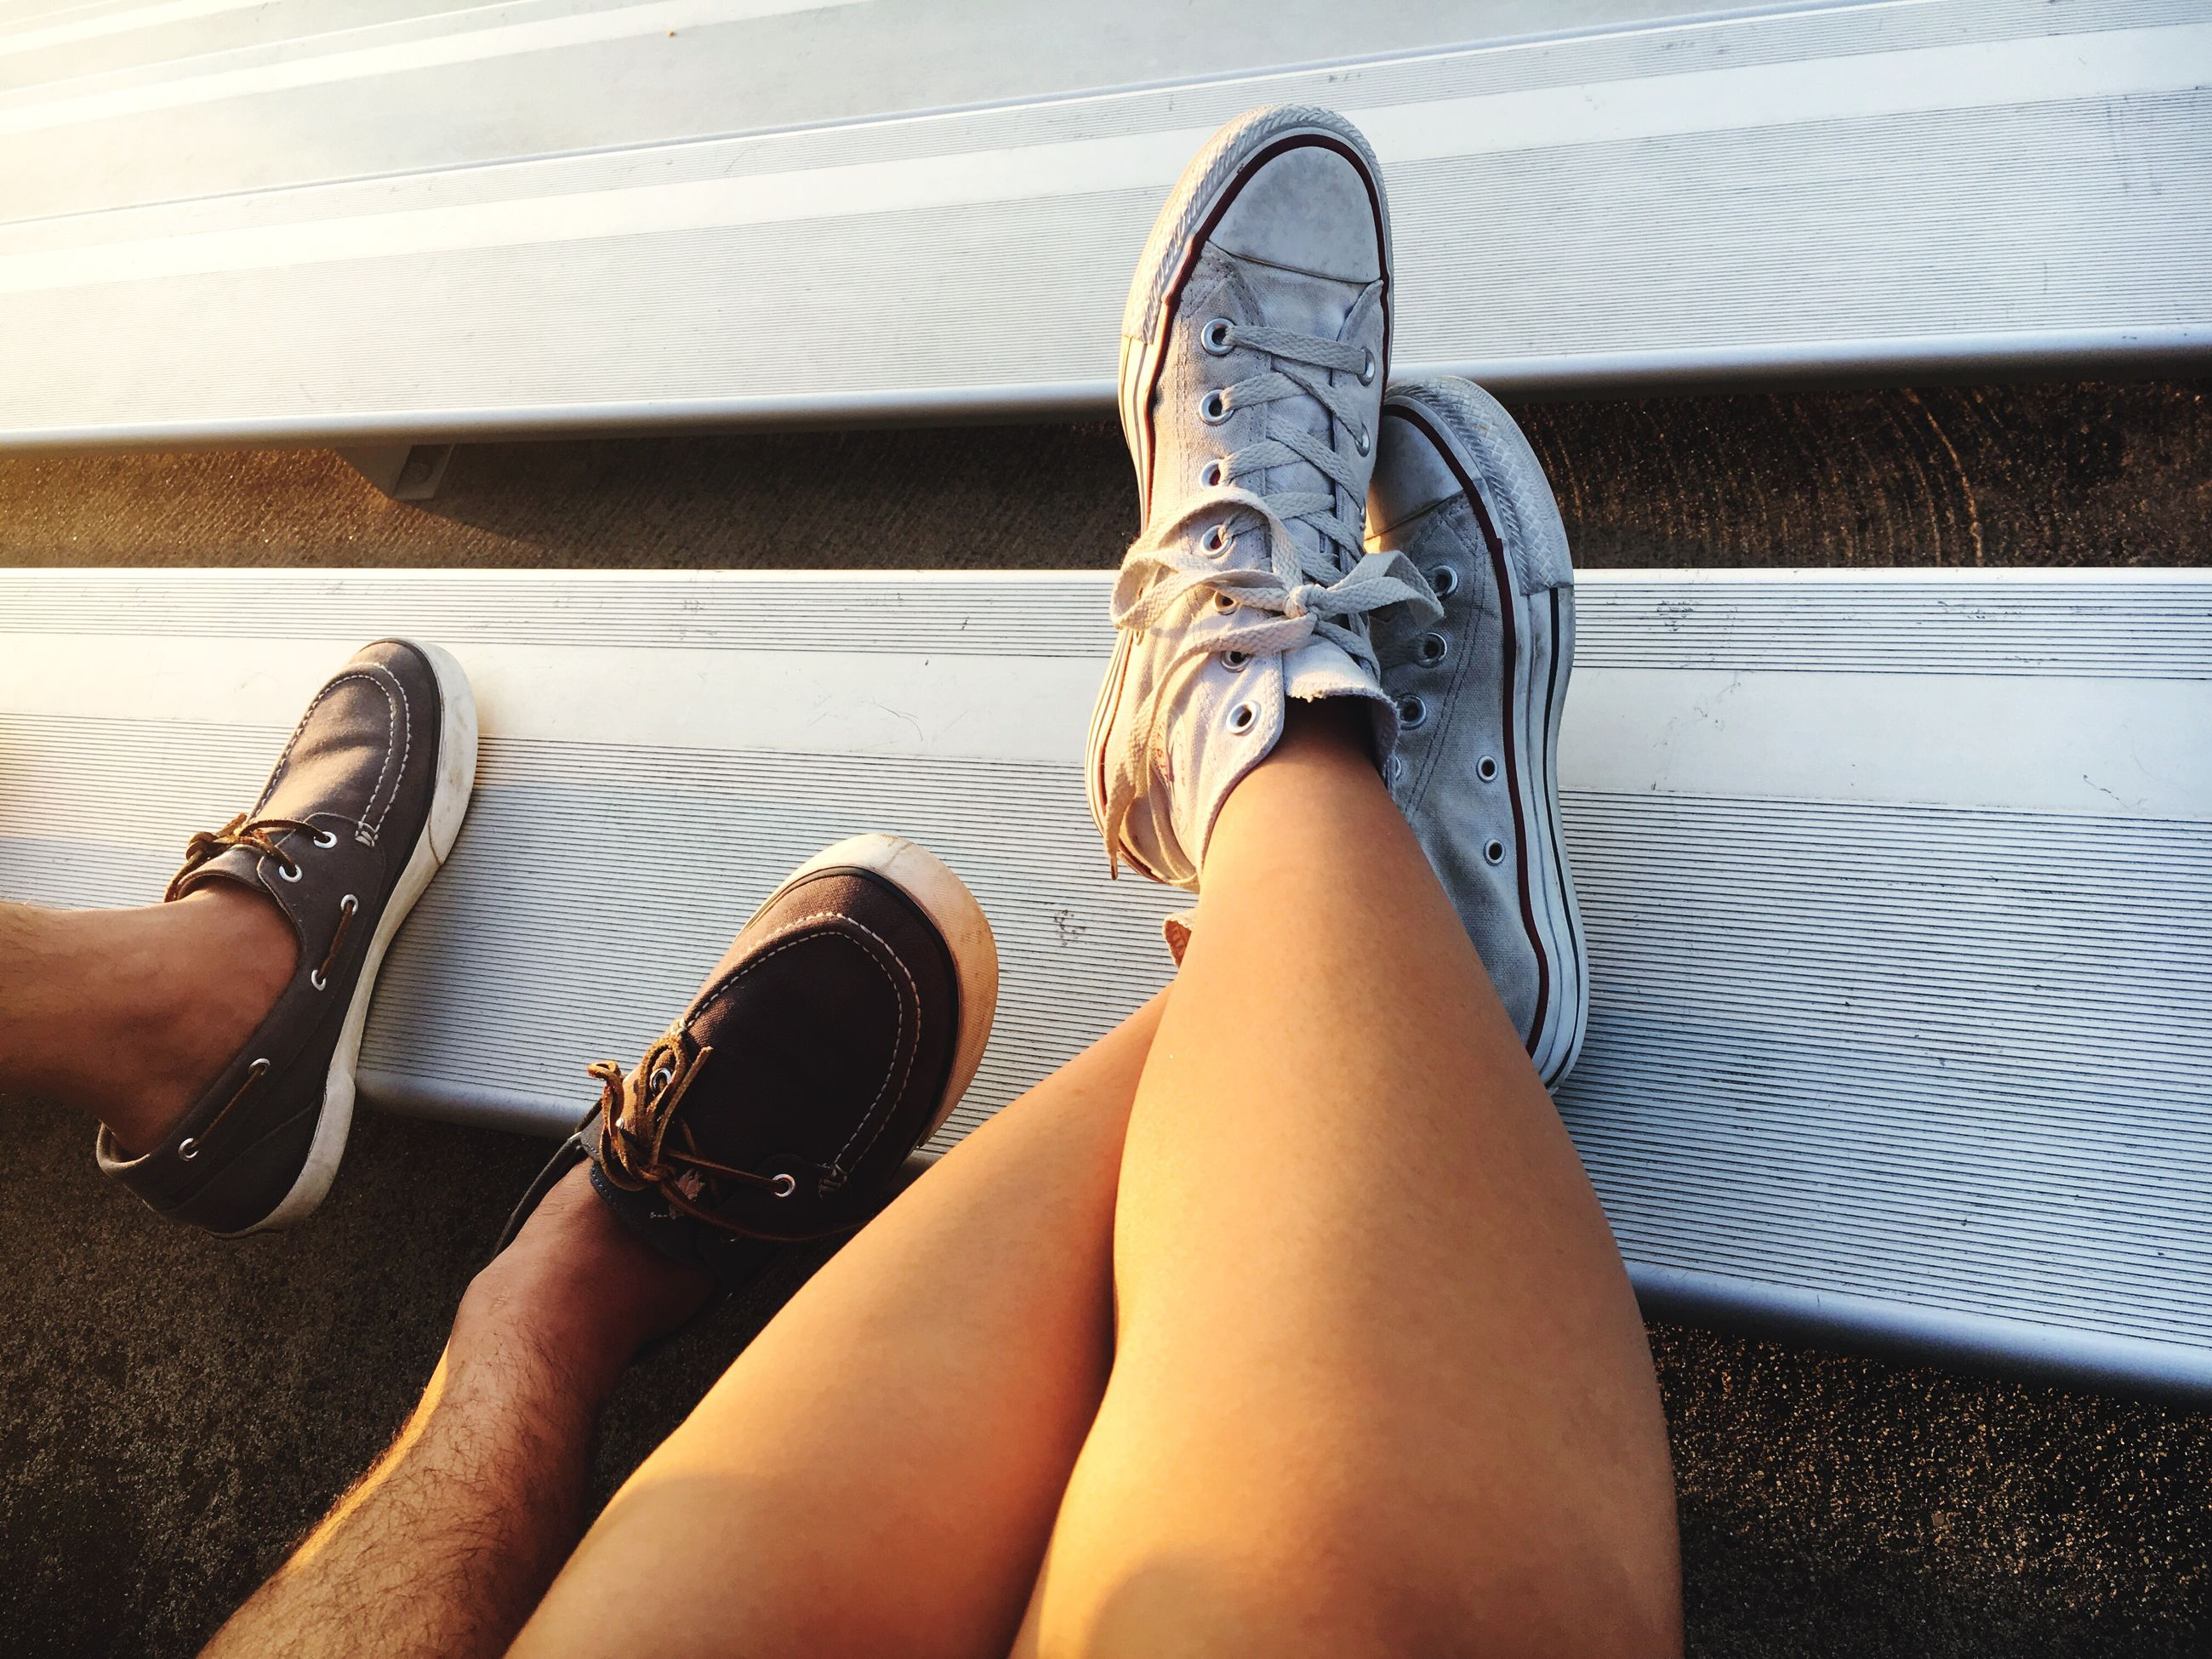 person, low section, personal perspective, shoe, sitting, relaxation, footwear, legs crossed at ankle, human foot, day